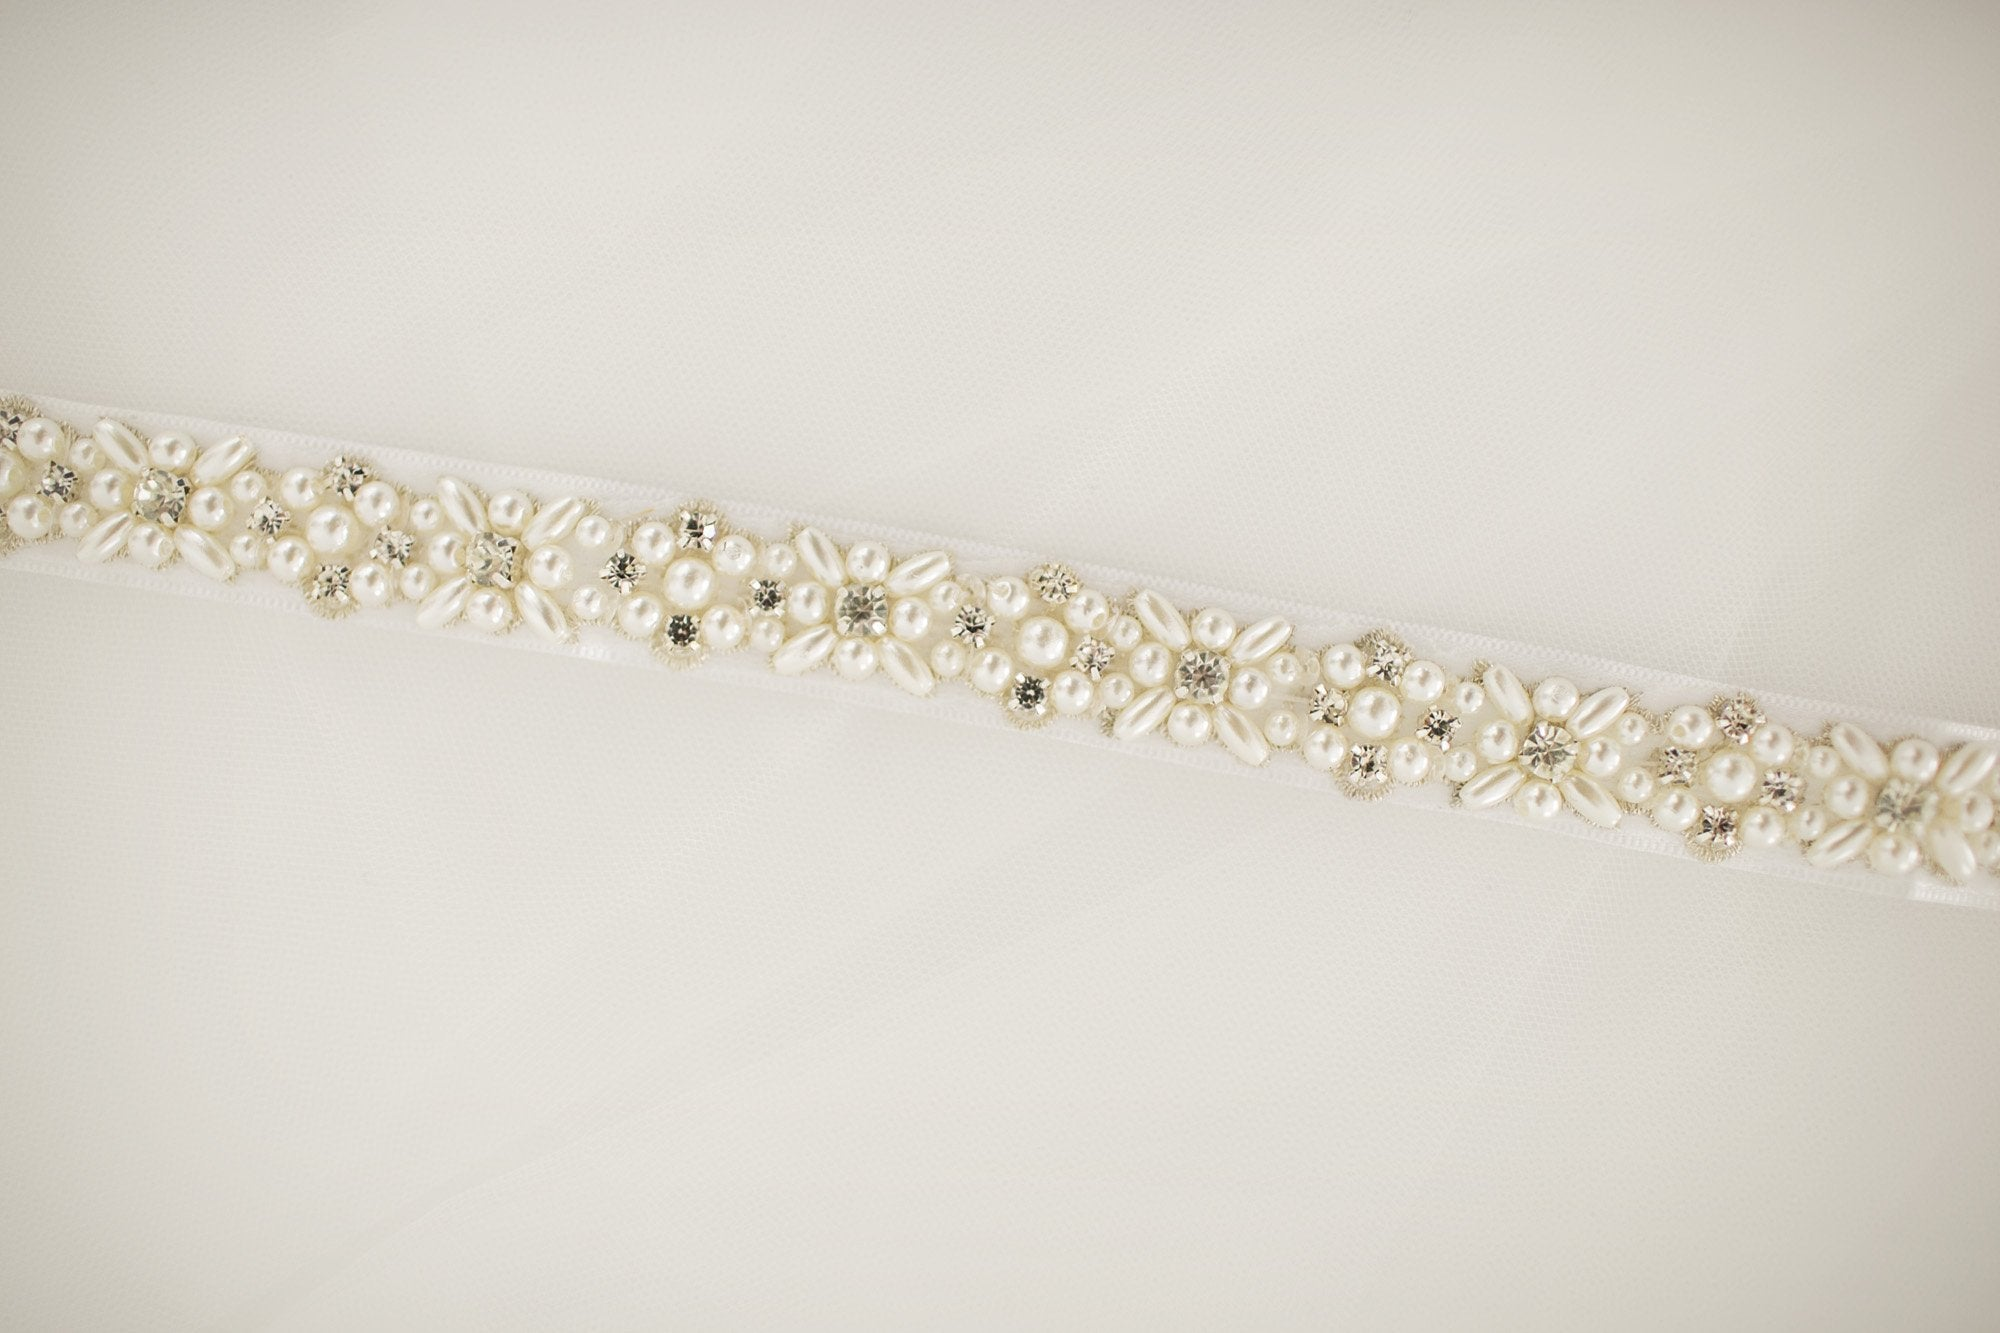 Dainty Pearl Bridal Sash - Violet and Eve